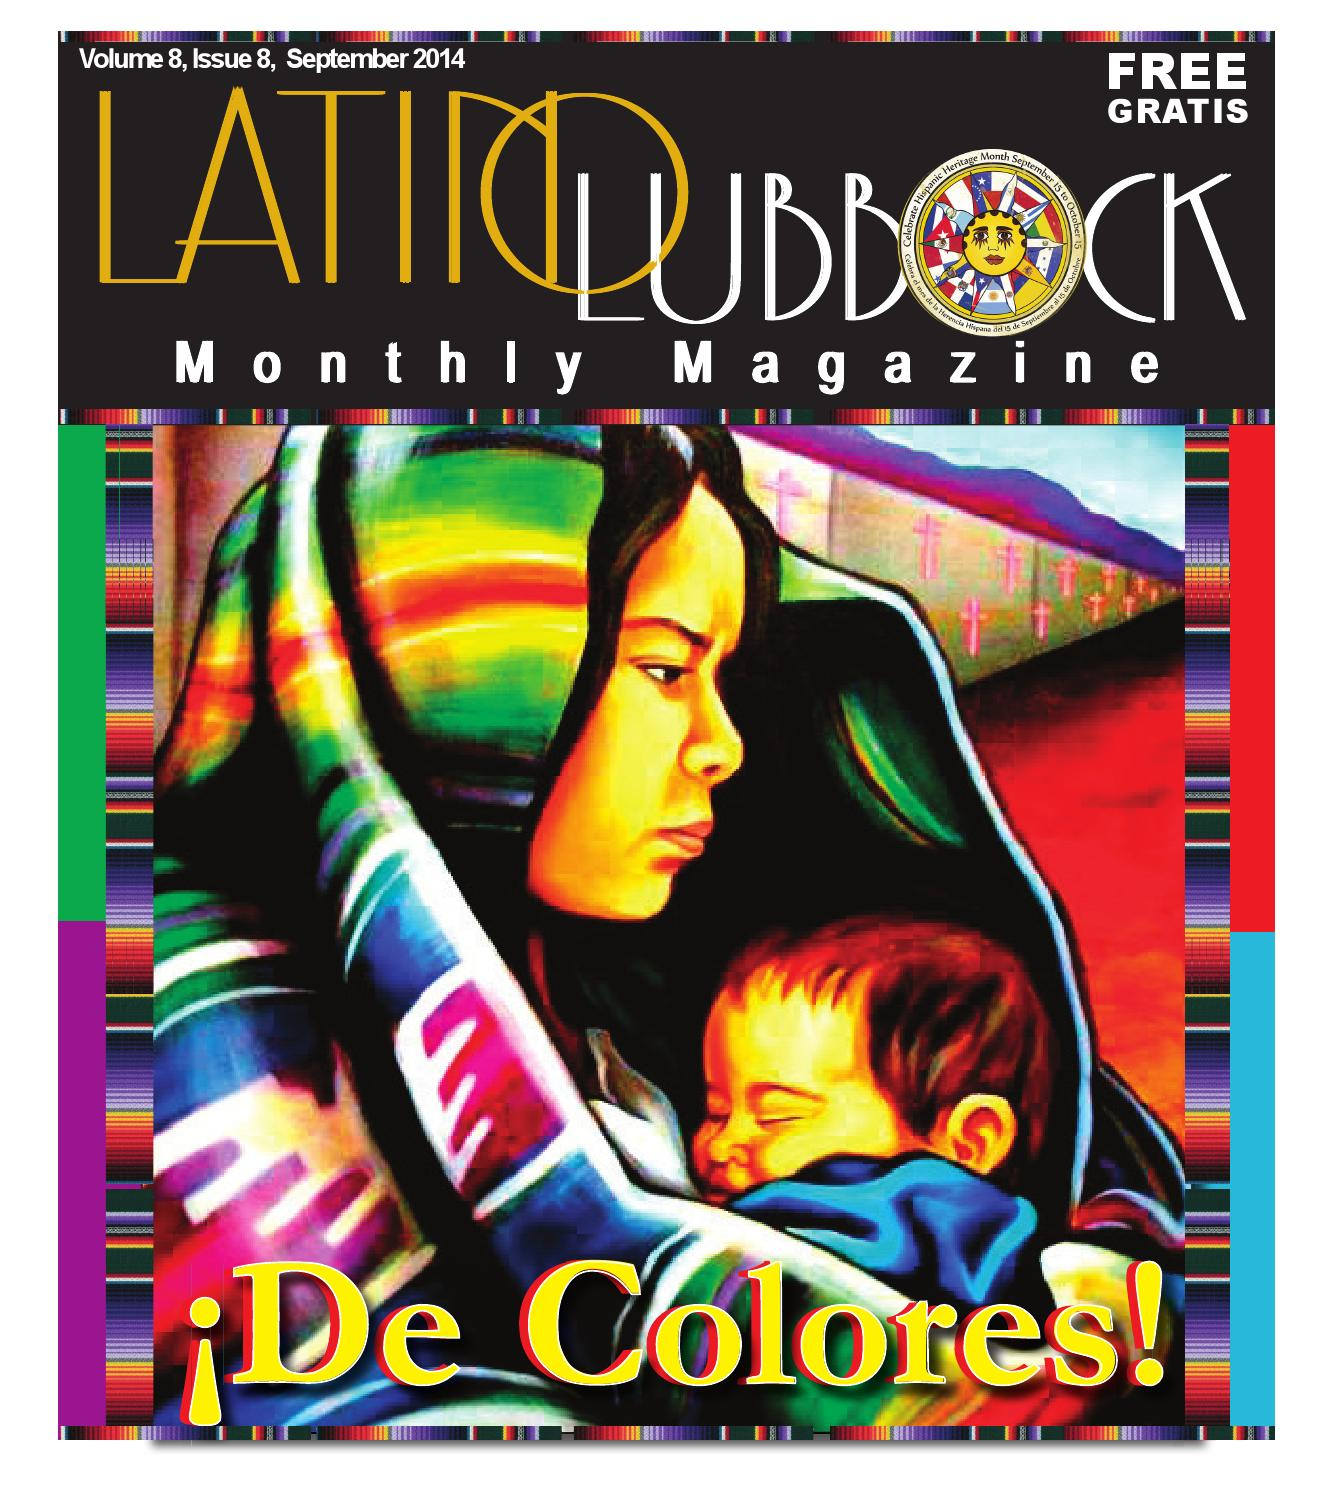 September 2014 latino lubbock vol 8 issue 9 by christy martinez september 2014 latino lubbock vol 8 issue 9 by christy martinez garcia issuu aiddatafo Gallery